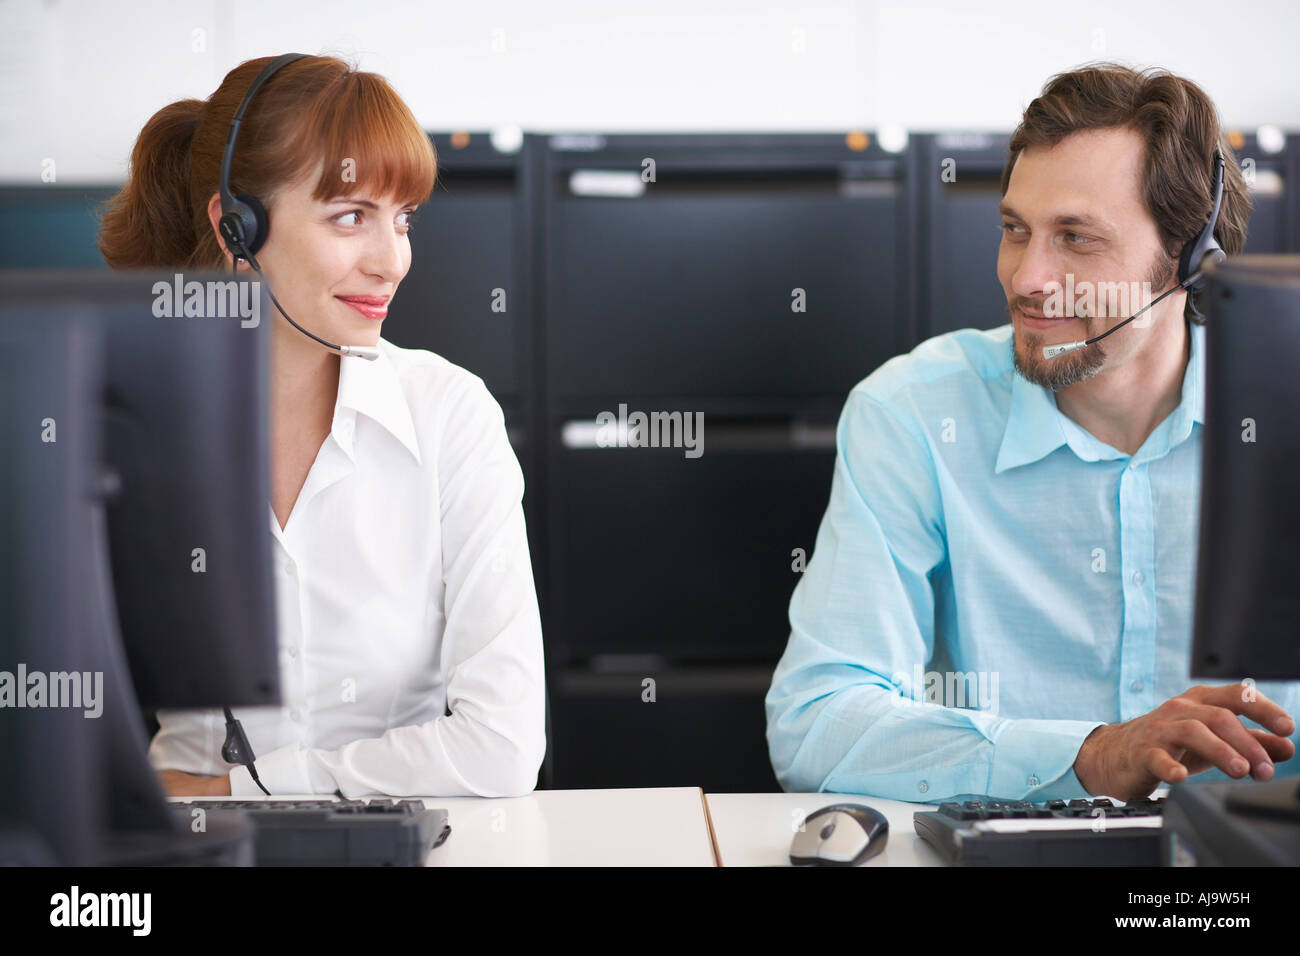 Business People Working on Computers with Headsets Stock Photo